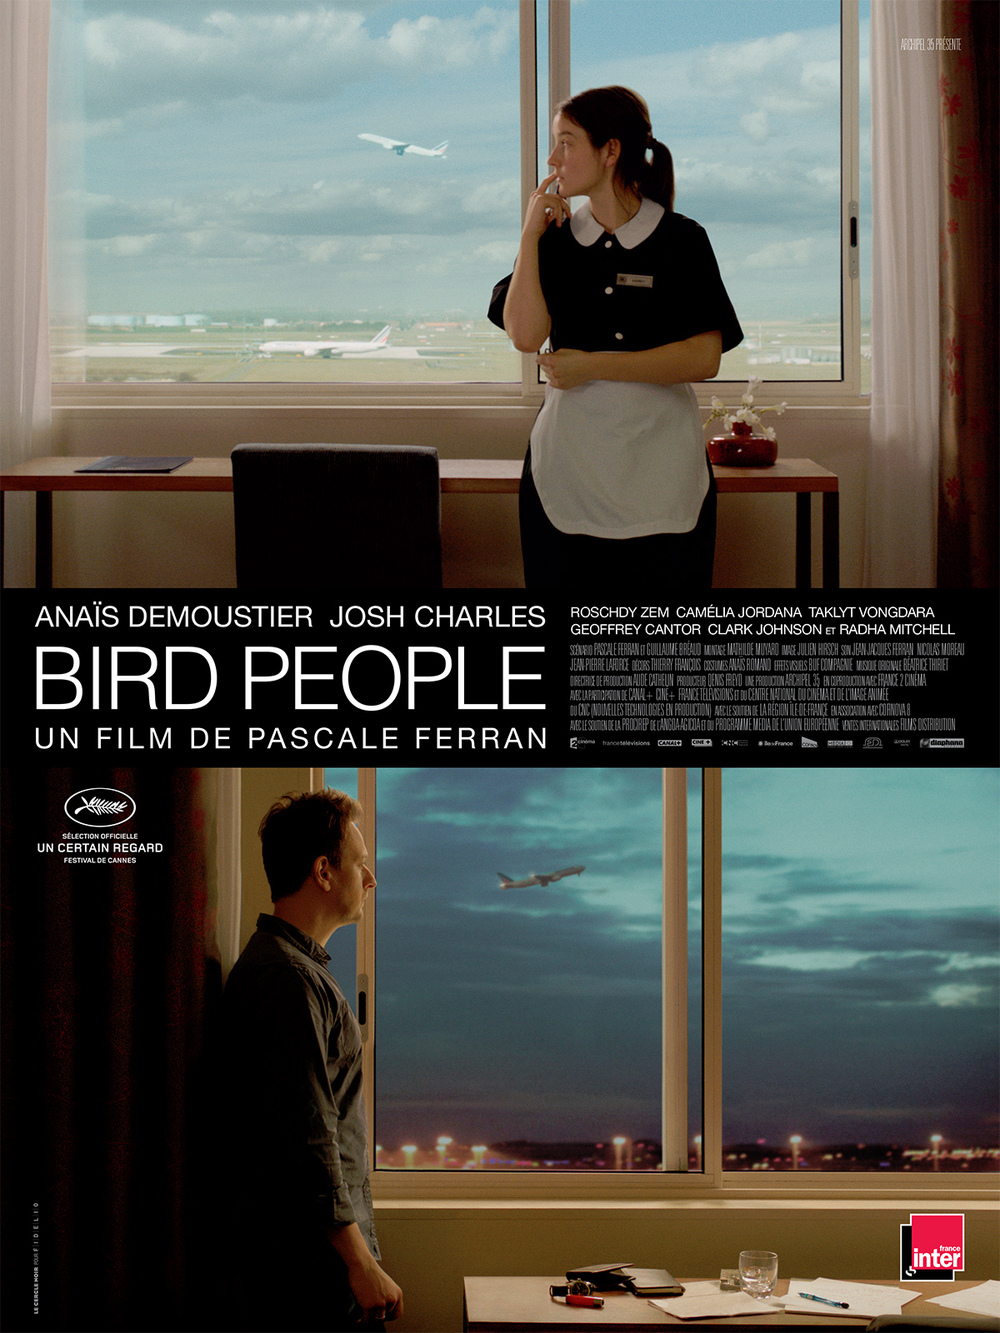 Bird People (2014). Director: Pascale Ferran. Starring: Josh Charles, Anaïs Demoustier, and Roschdy Zem.  Atlantic Pictures Production Services, New York. NYC.  Production Management  Post-Production Supervision  Casting  Budget and Schedule Preparation  Location Scouting  Negotiating union and guild agreements  Negotiating vendor agreements including production equipment, studio rentals and post-production facilities  Hiring crews and production personnel